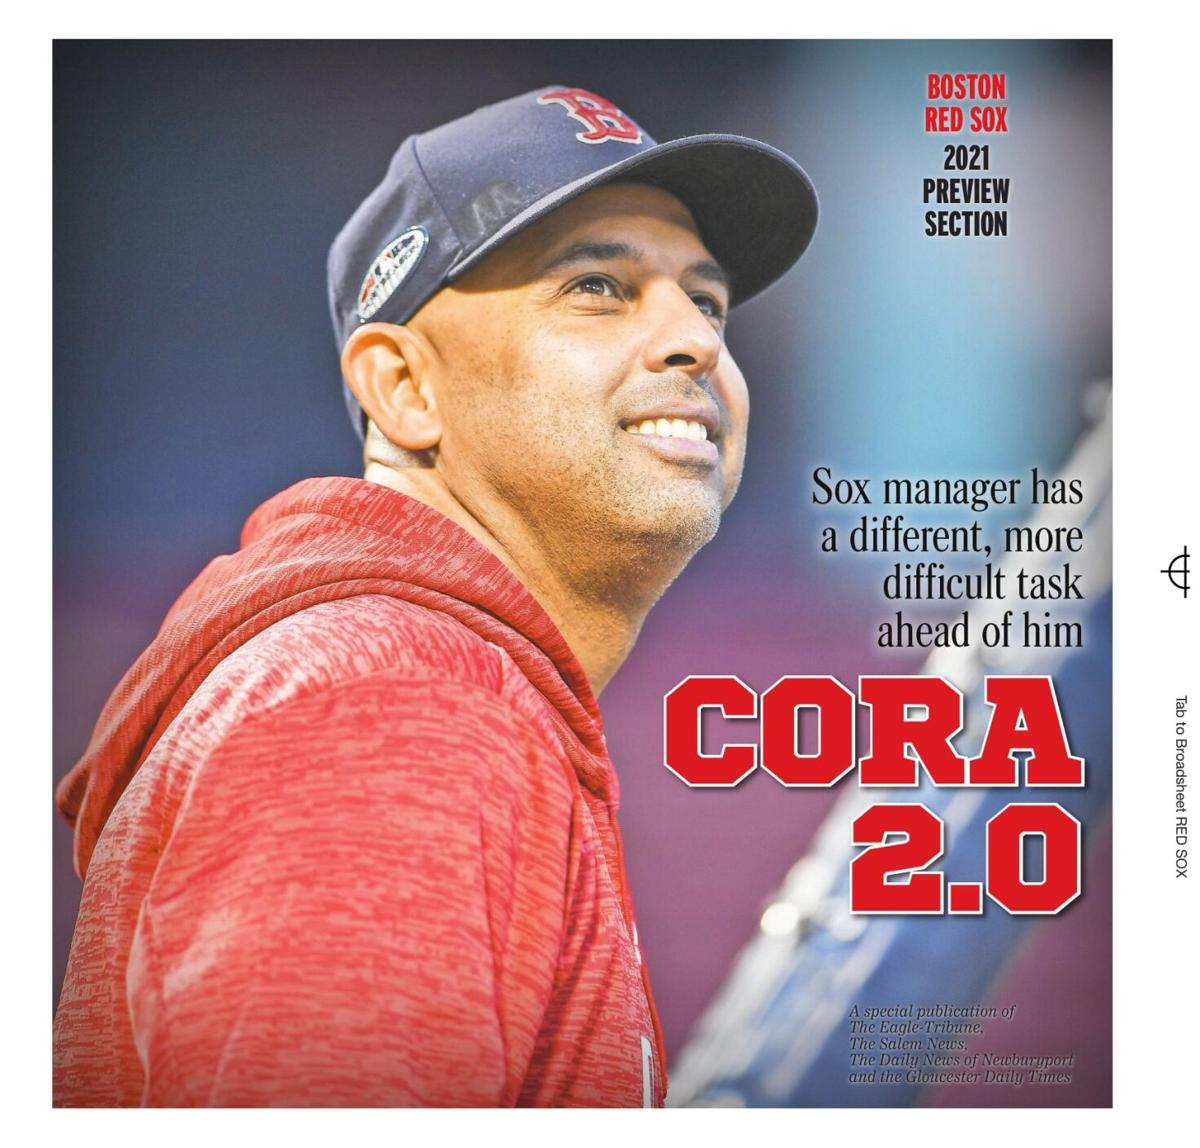 Red Sox 2021 Season Preview